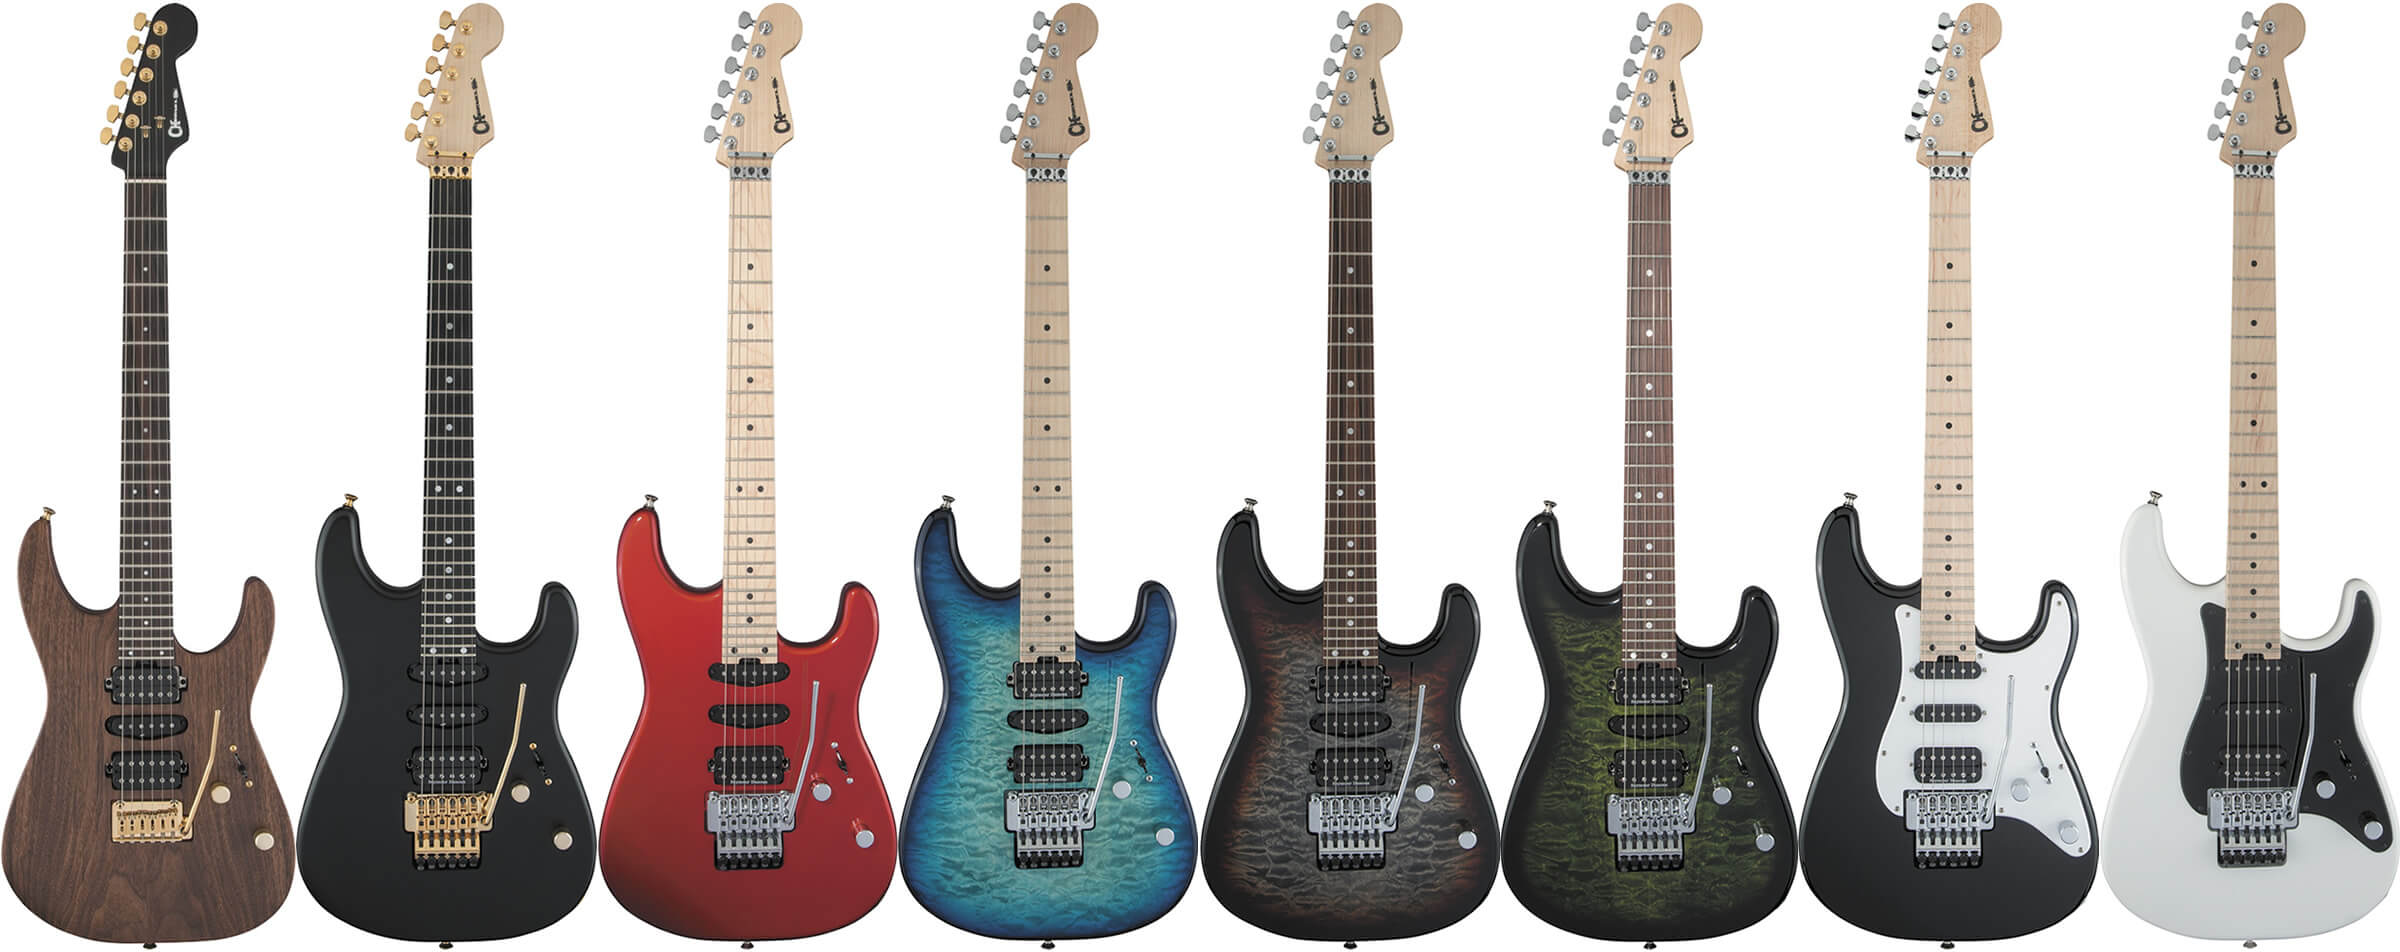 Charvel MJ Series